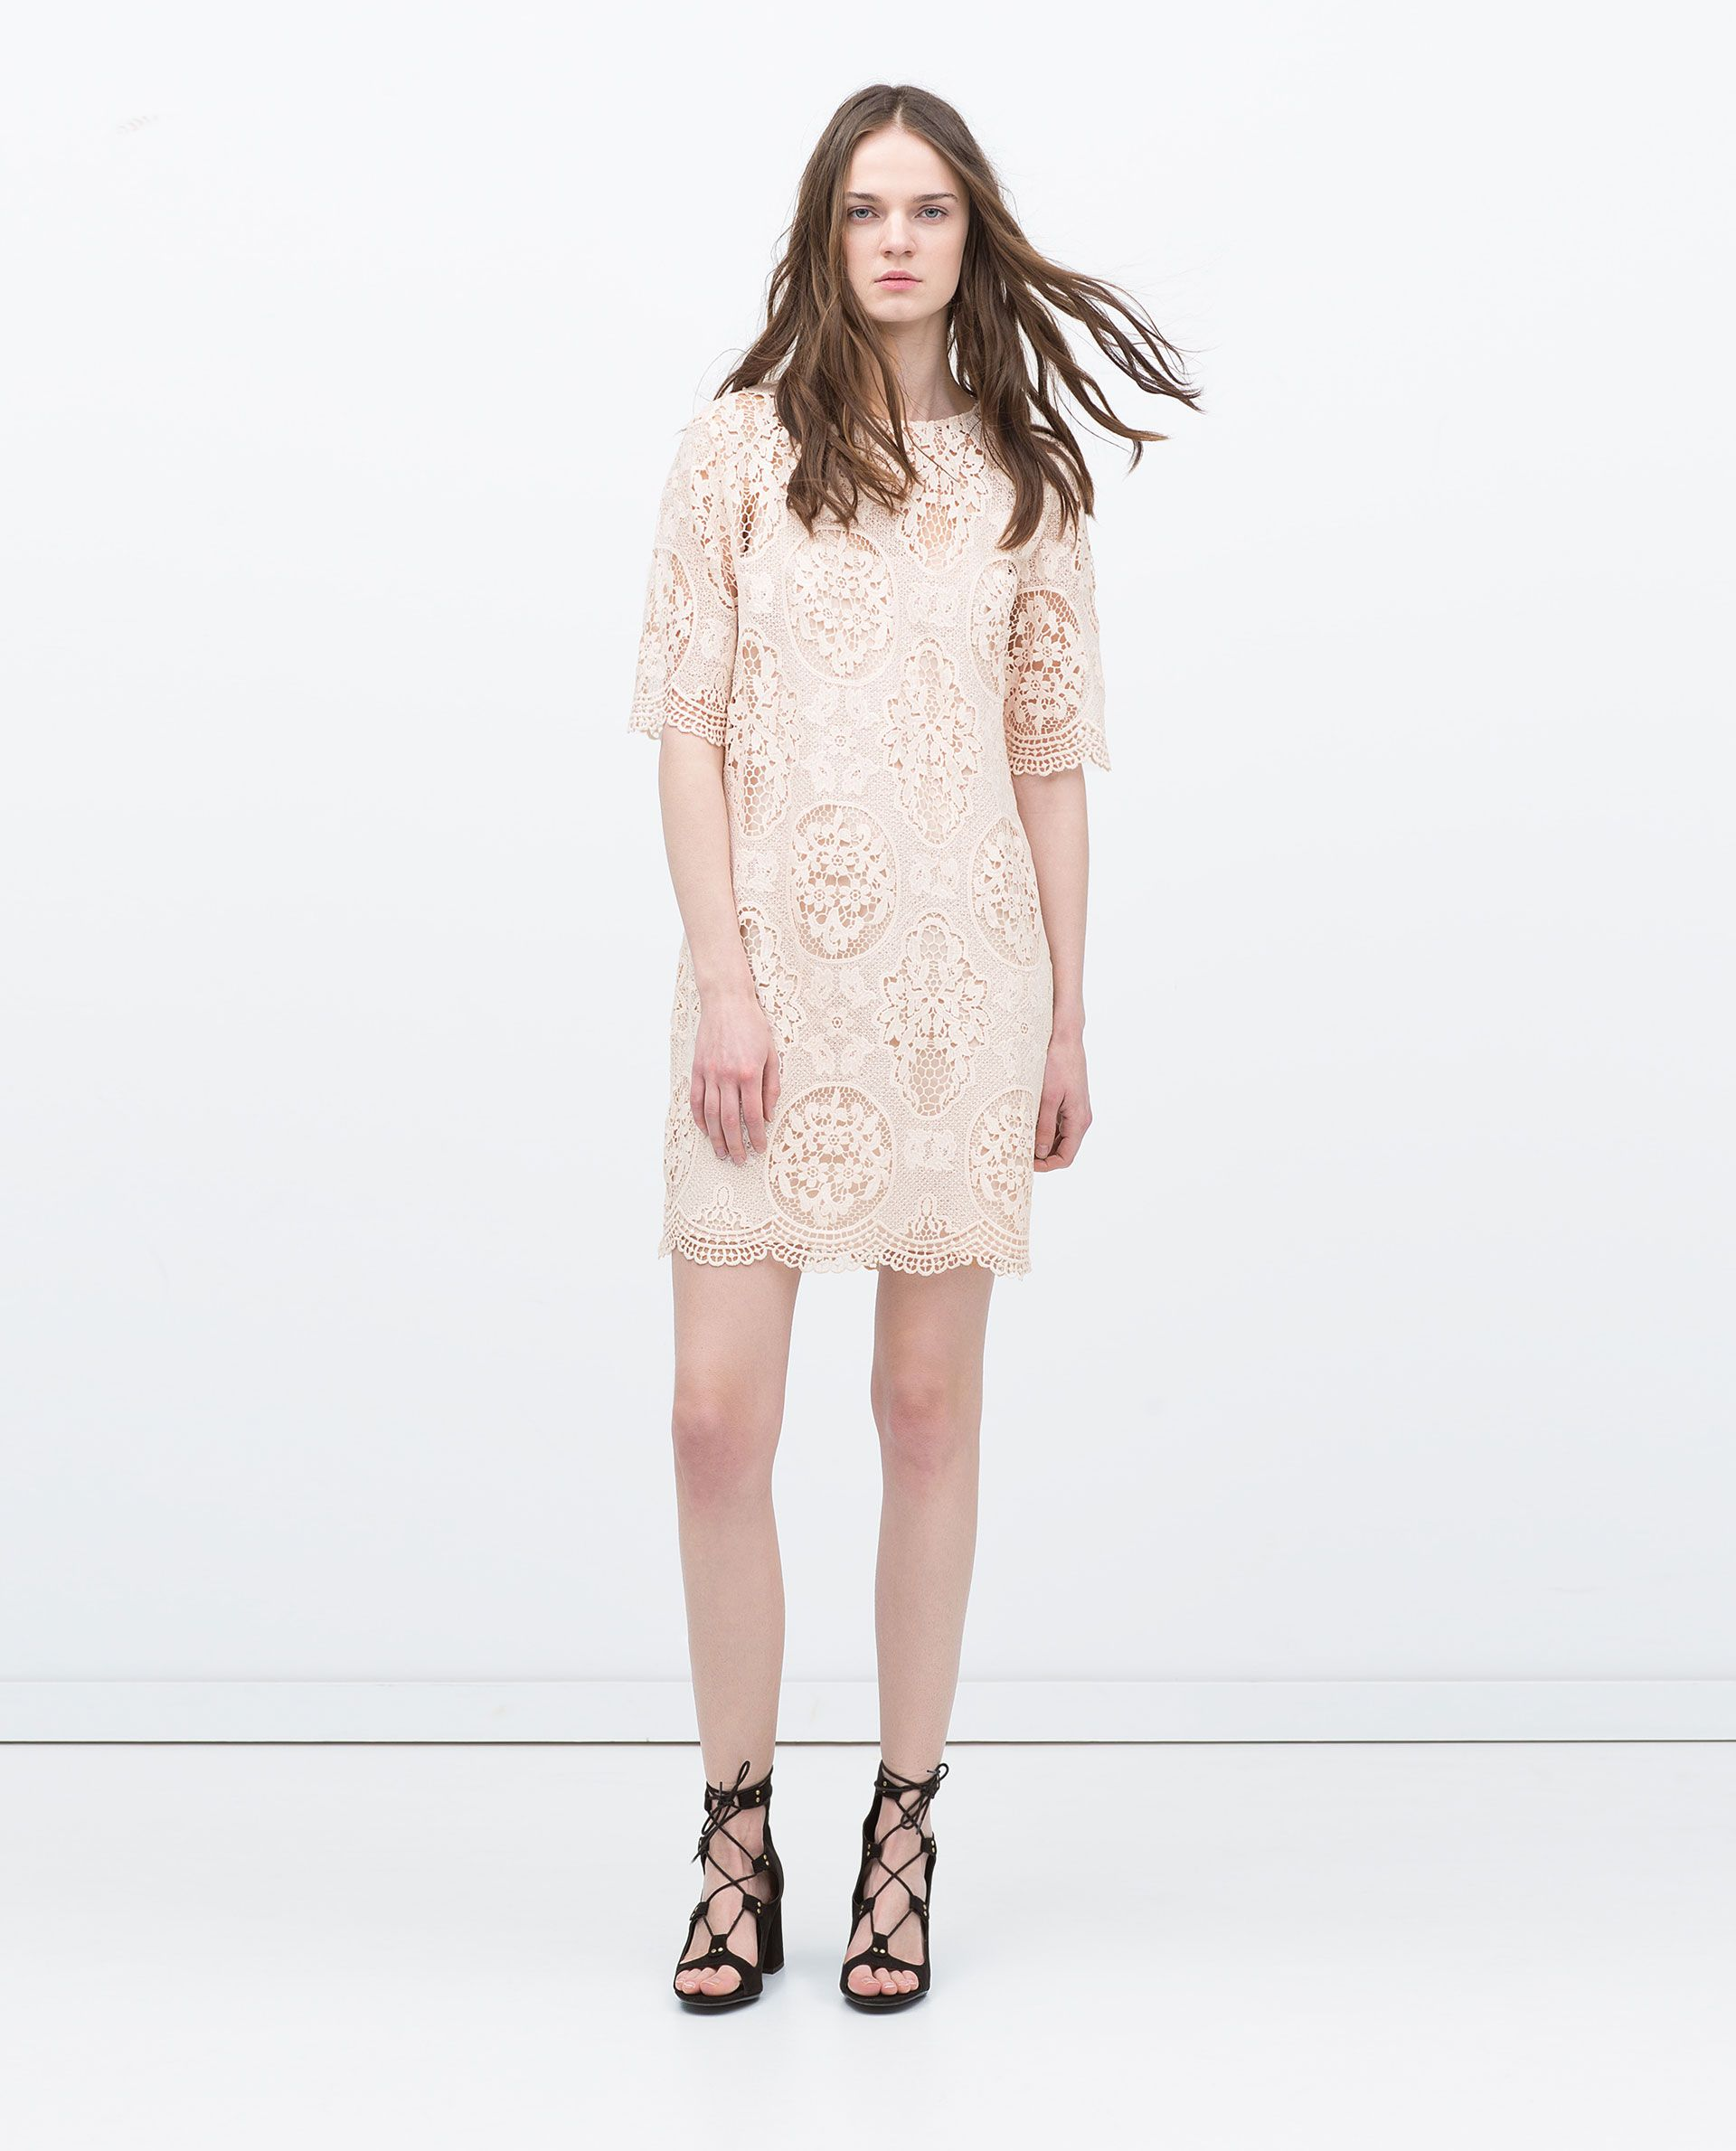 Zara new this week outfitish pinterest lace dress zara nude pink lace dress from zara ombrellifo Choice Image